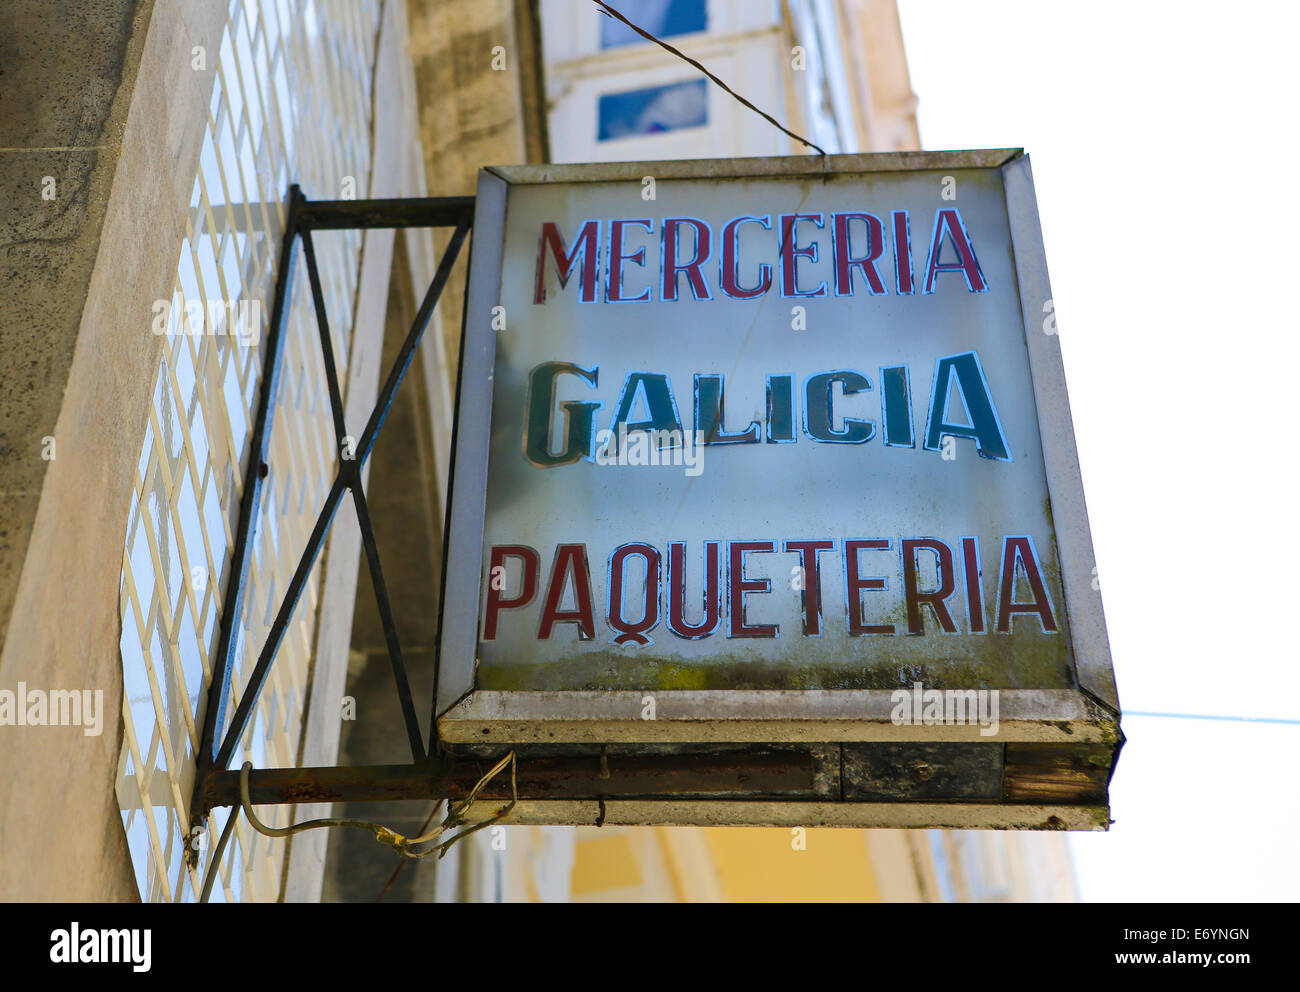 BETANZOS, SPAIN - JULY 30, 2014: Old typical sign of a merceria (haberdashery) in the historic town Betanzos, Galicia, Stock Photo